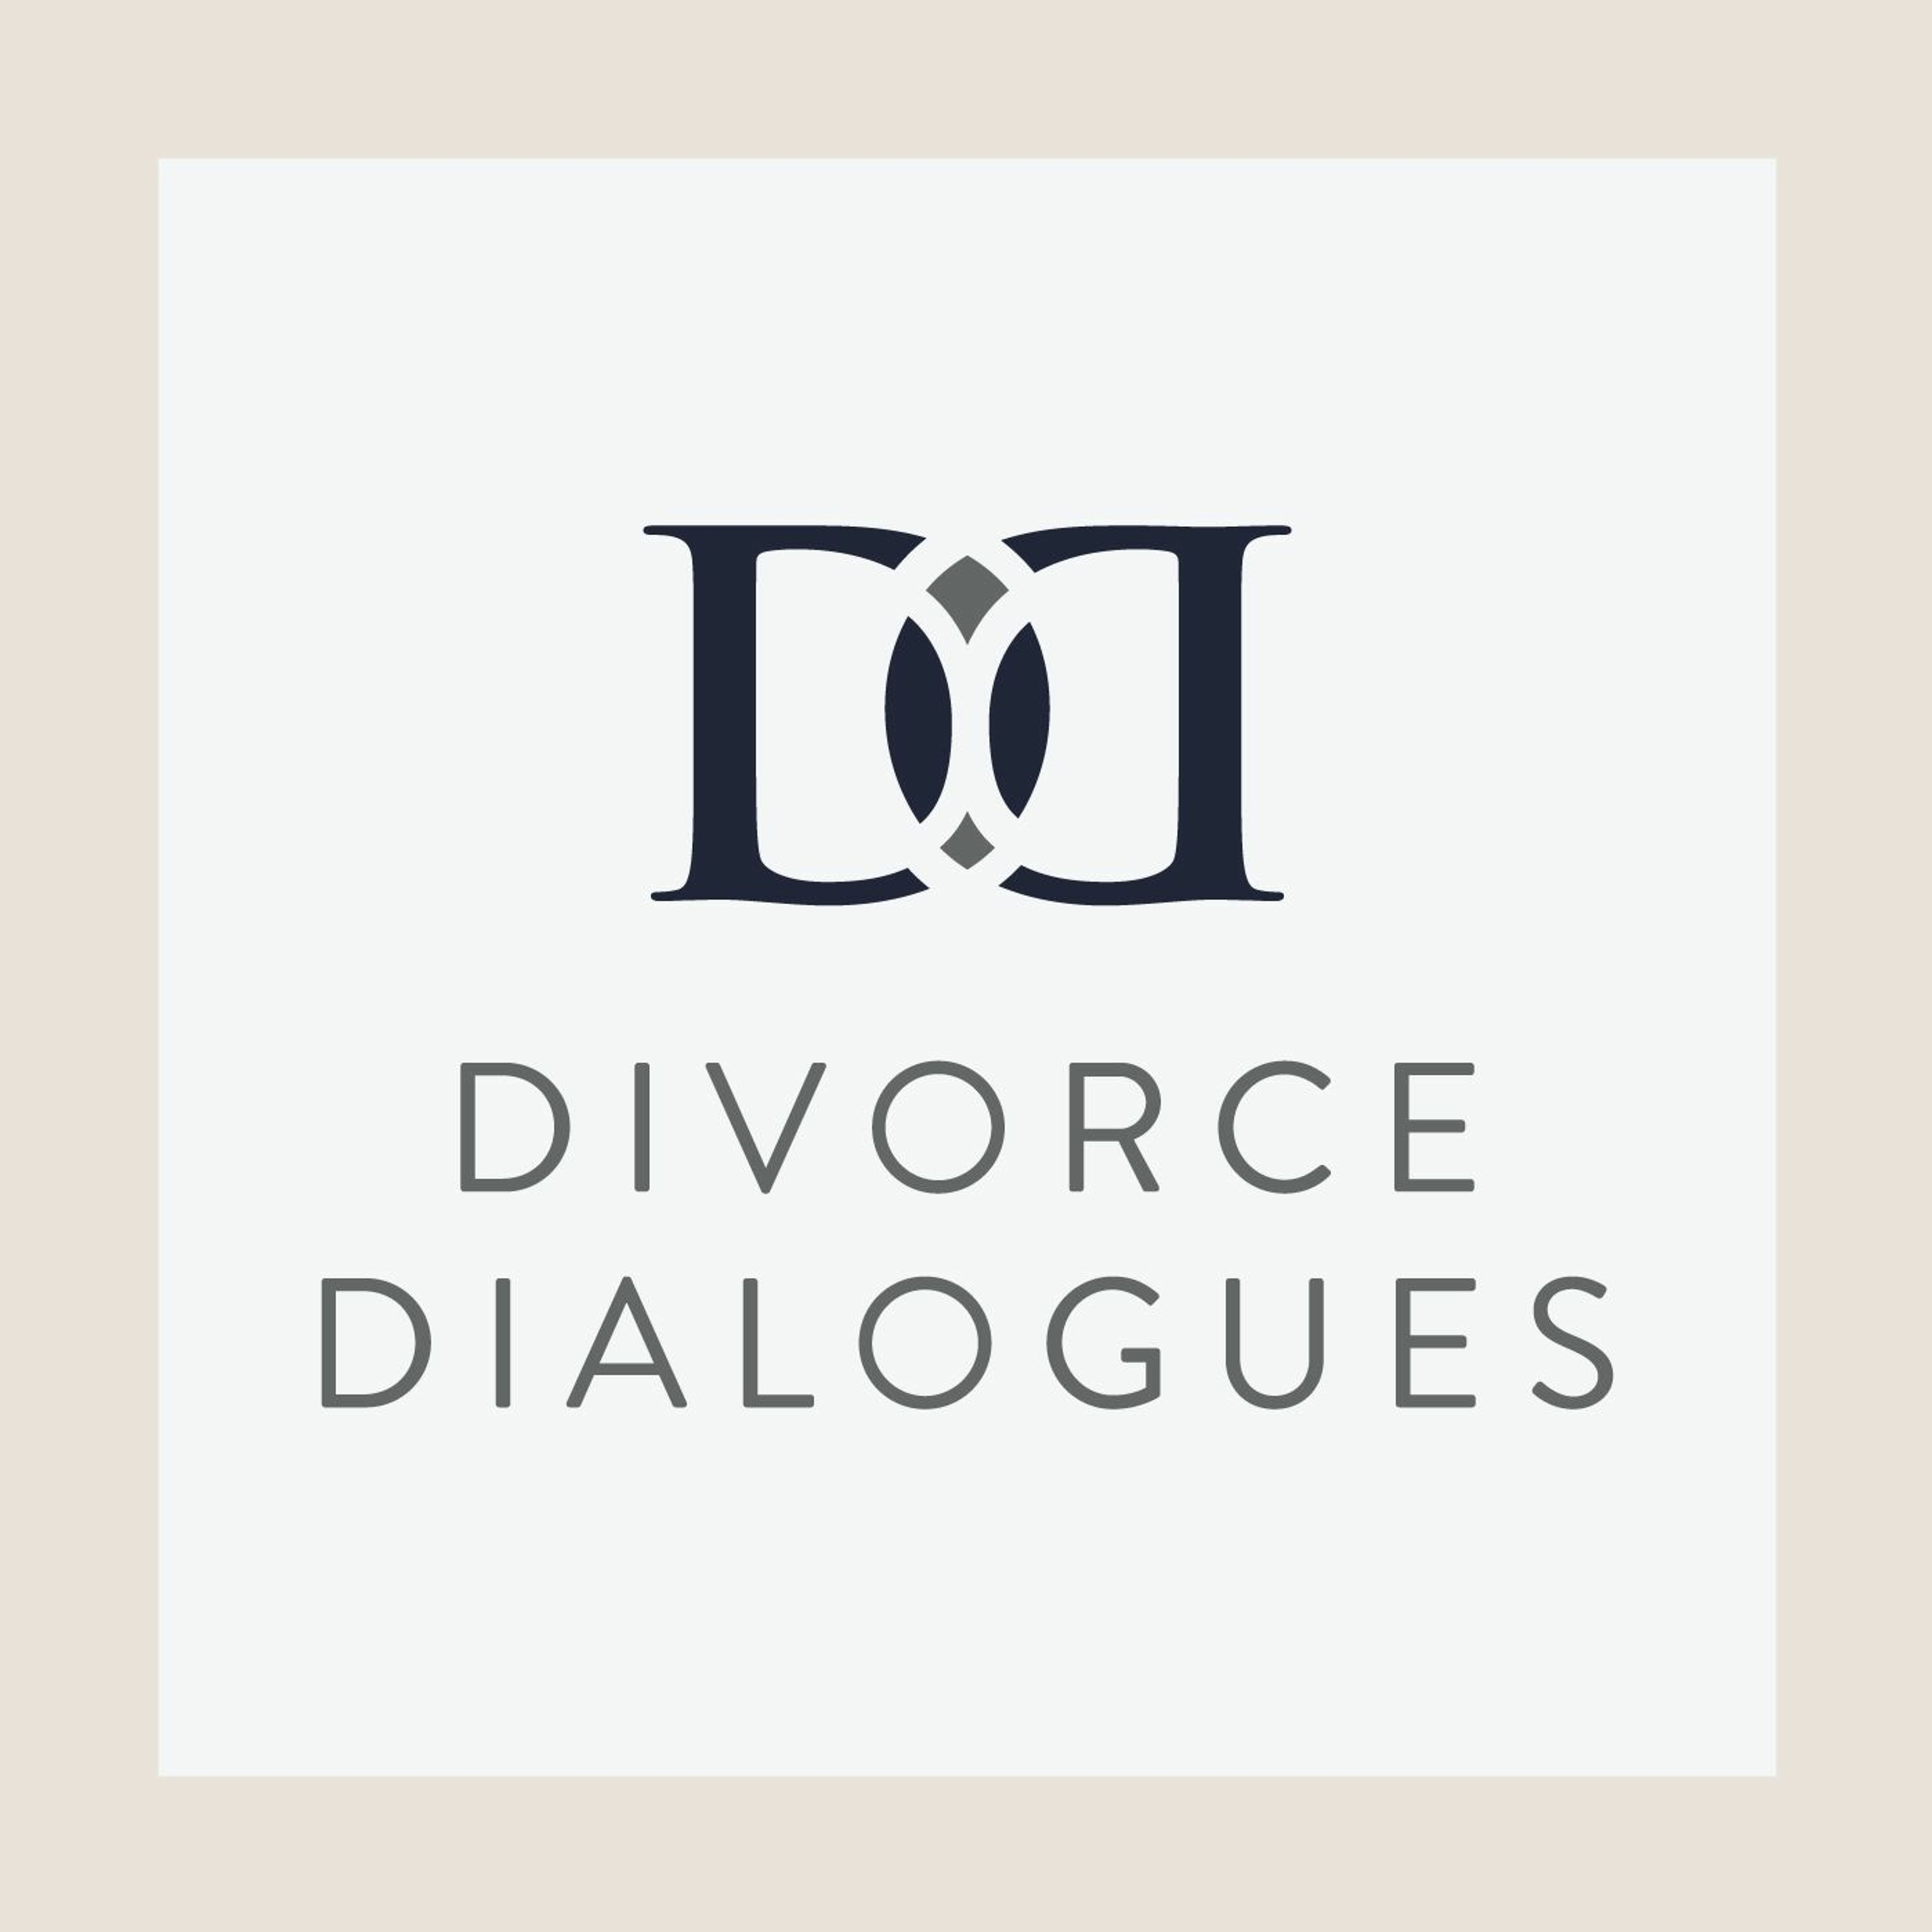 Divorce Dialogues - Redesigning Your Living Space Post-Divorce with Jodi Topitz